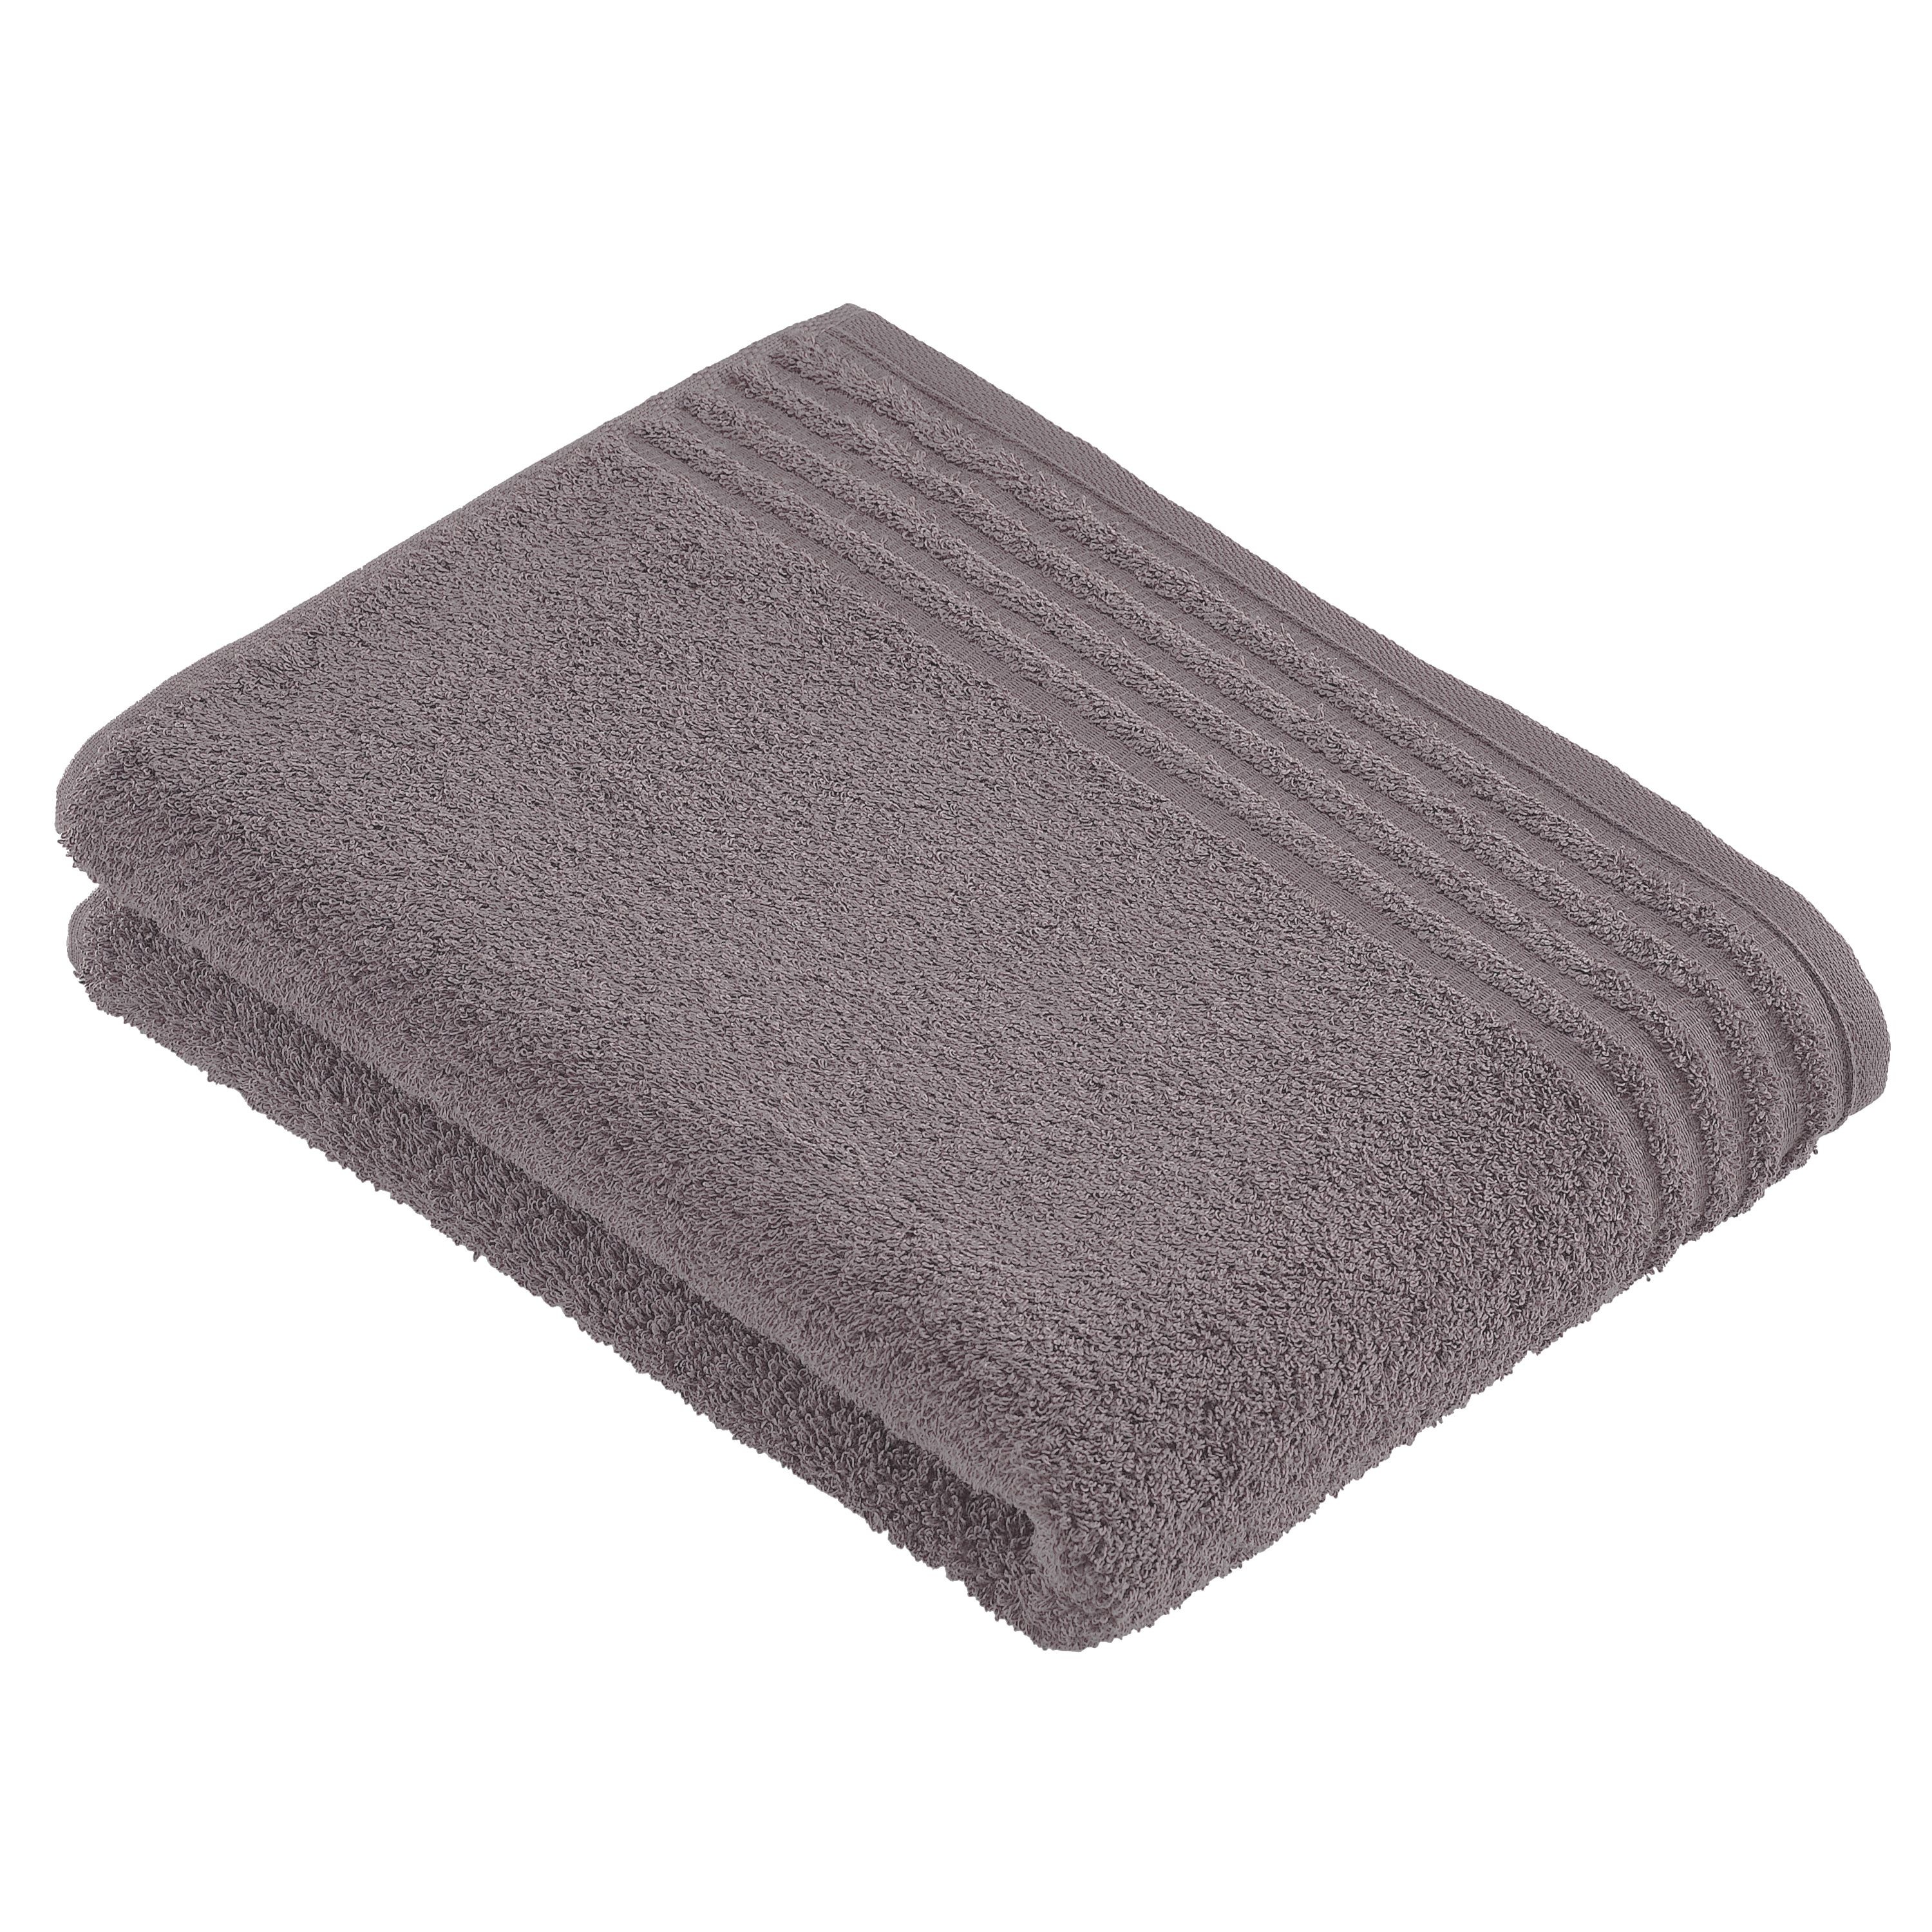 Vienna pebble towel range